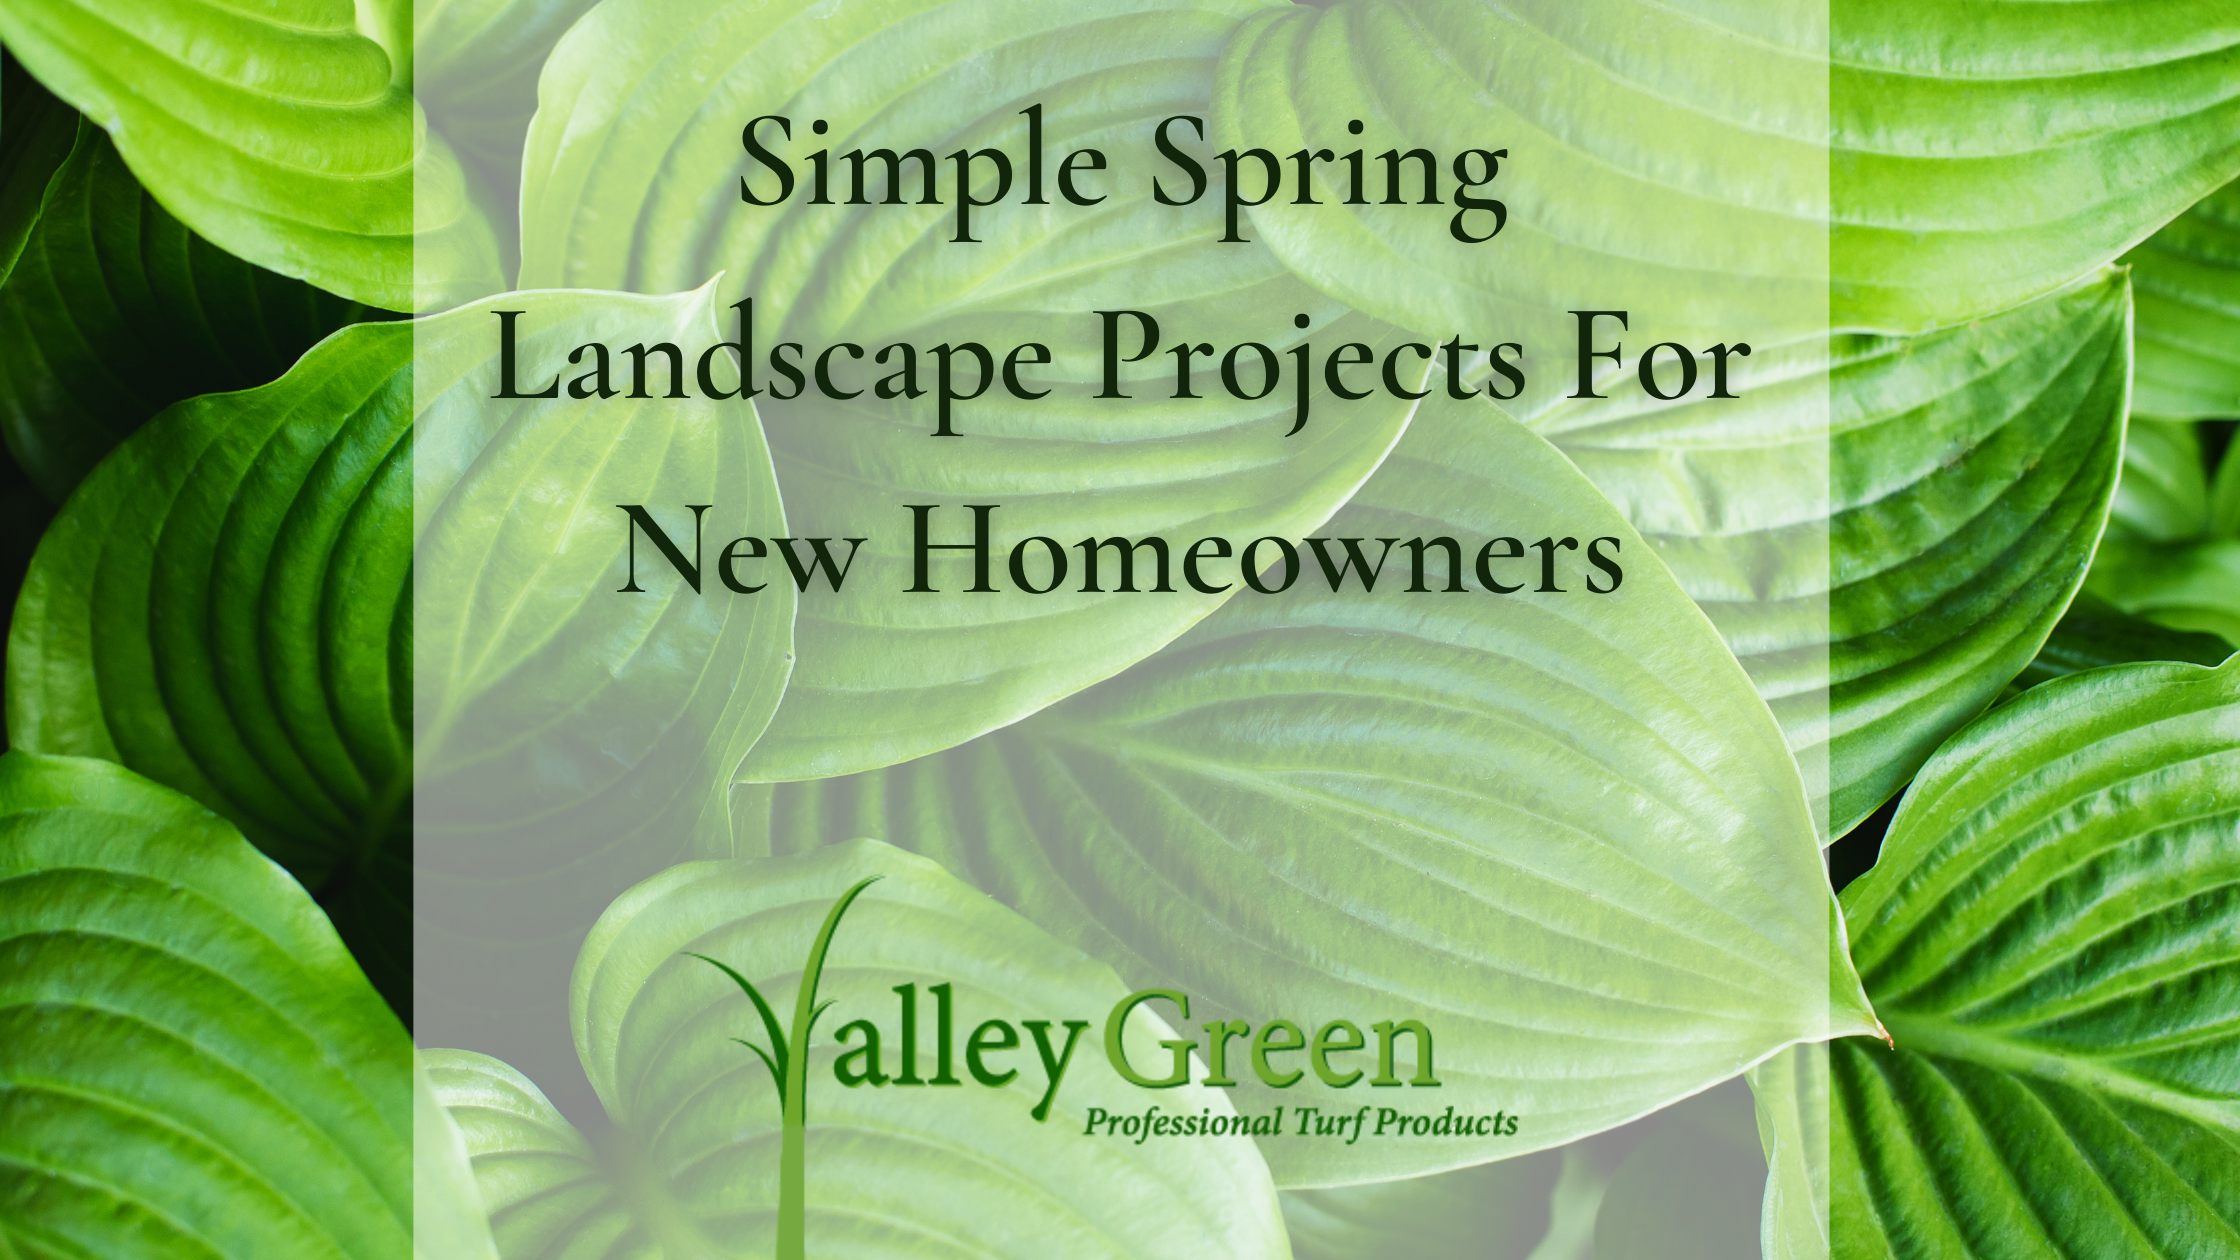 Spring Landscape Projects For New Homeowners